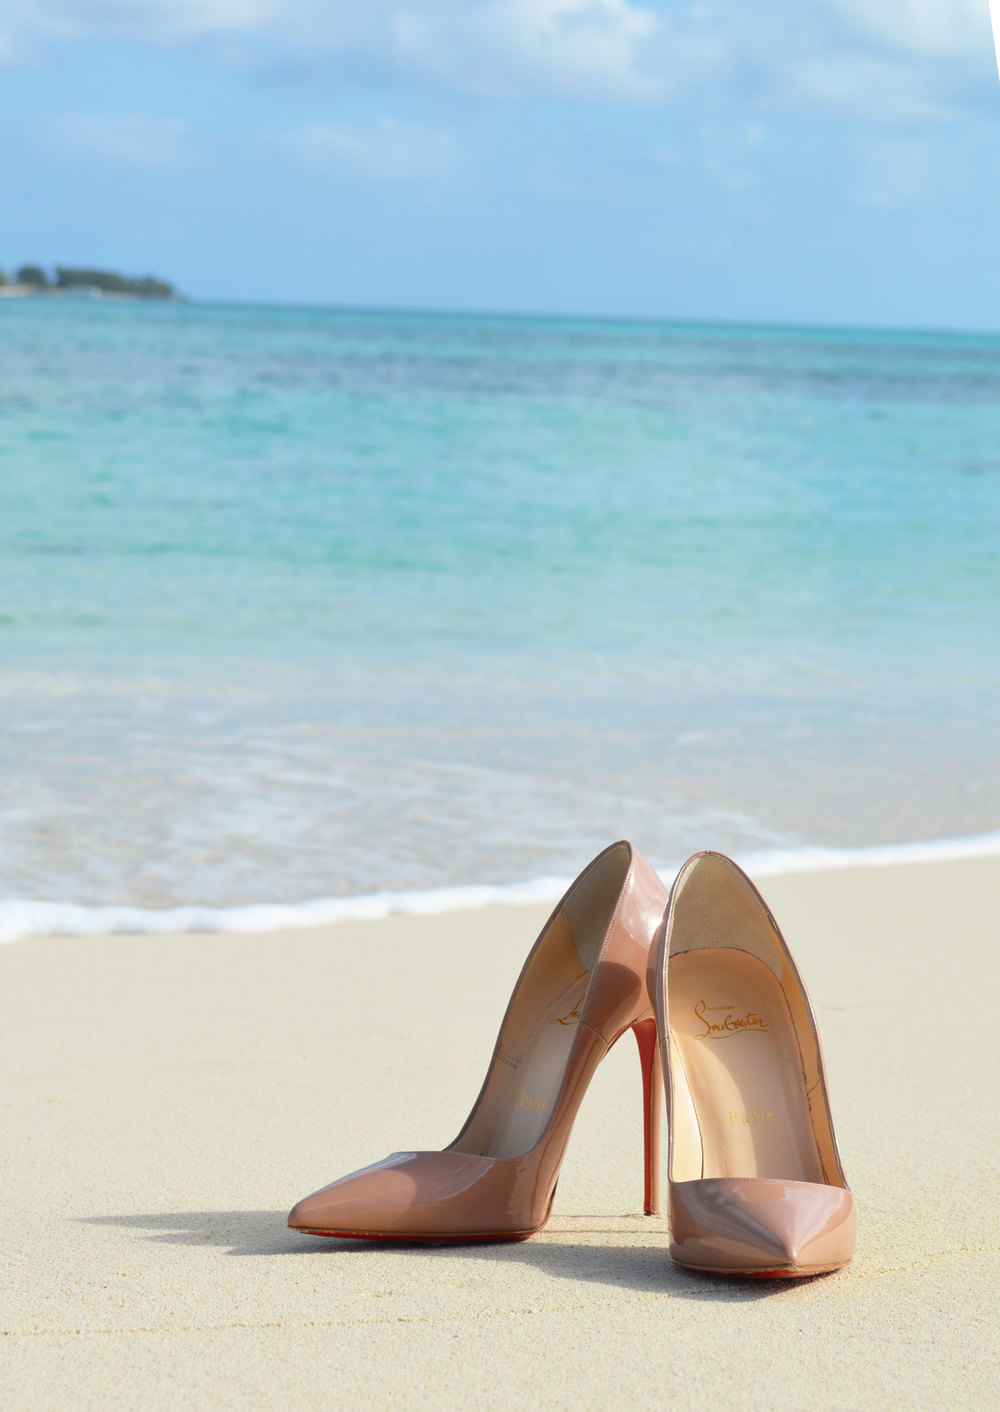 Nassau-bahamas-sandyport-beach-christian-louboutin-so-kate-beach.jpeg